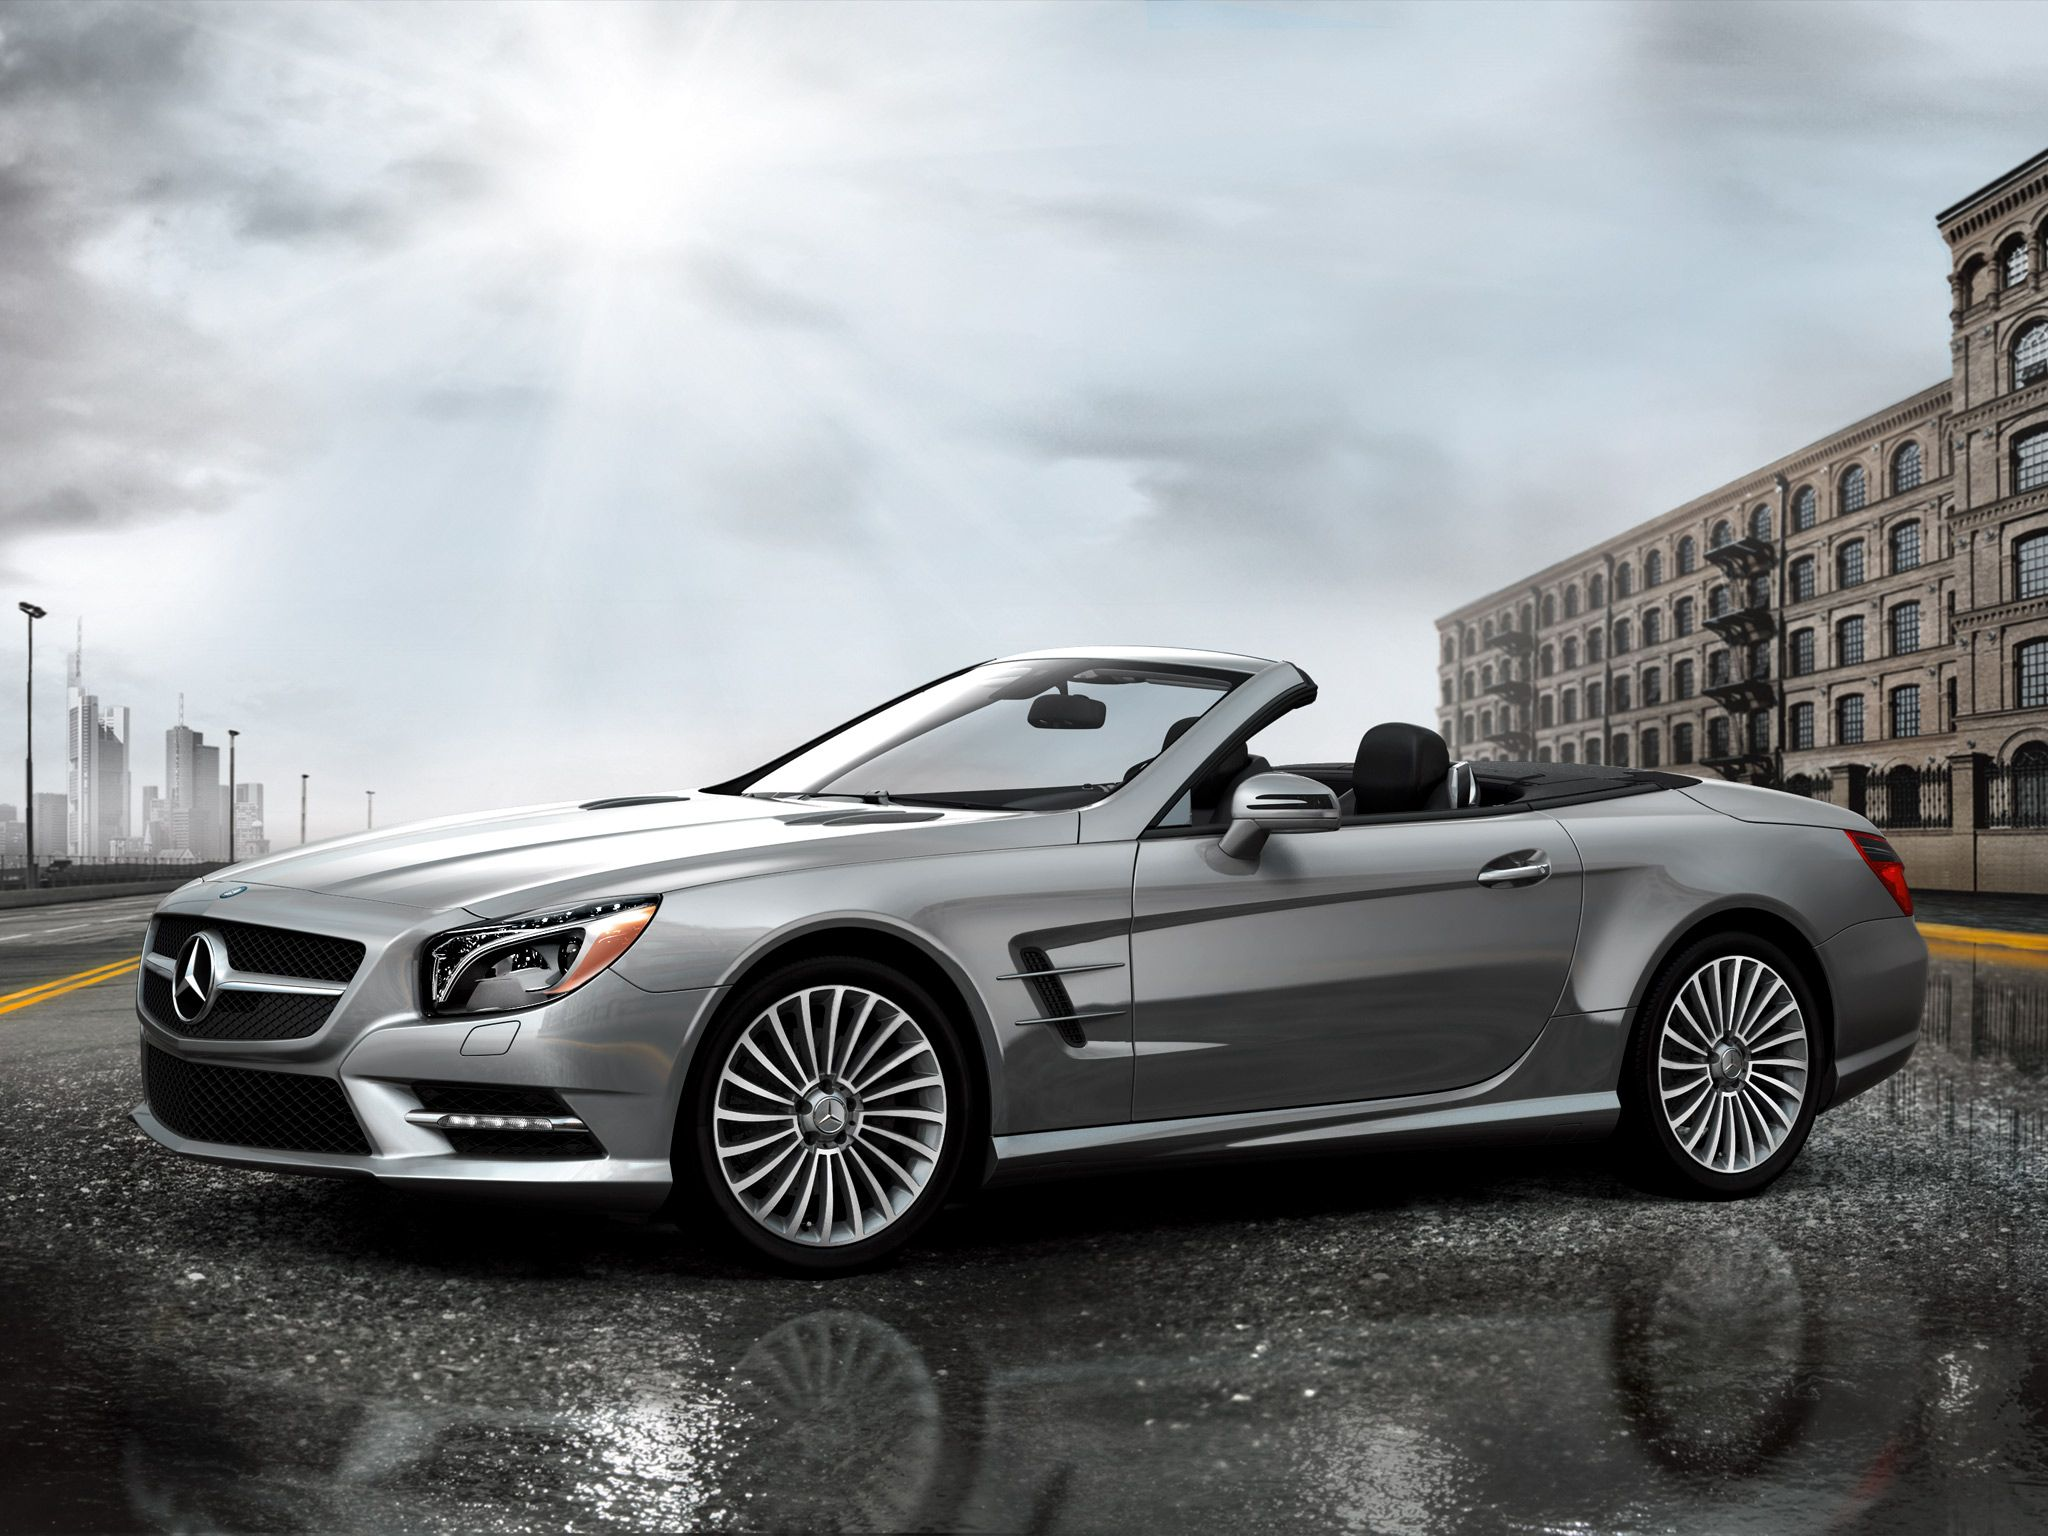 SL550 With Optional 19 inch Multispoke Wheels